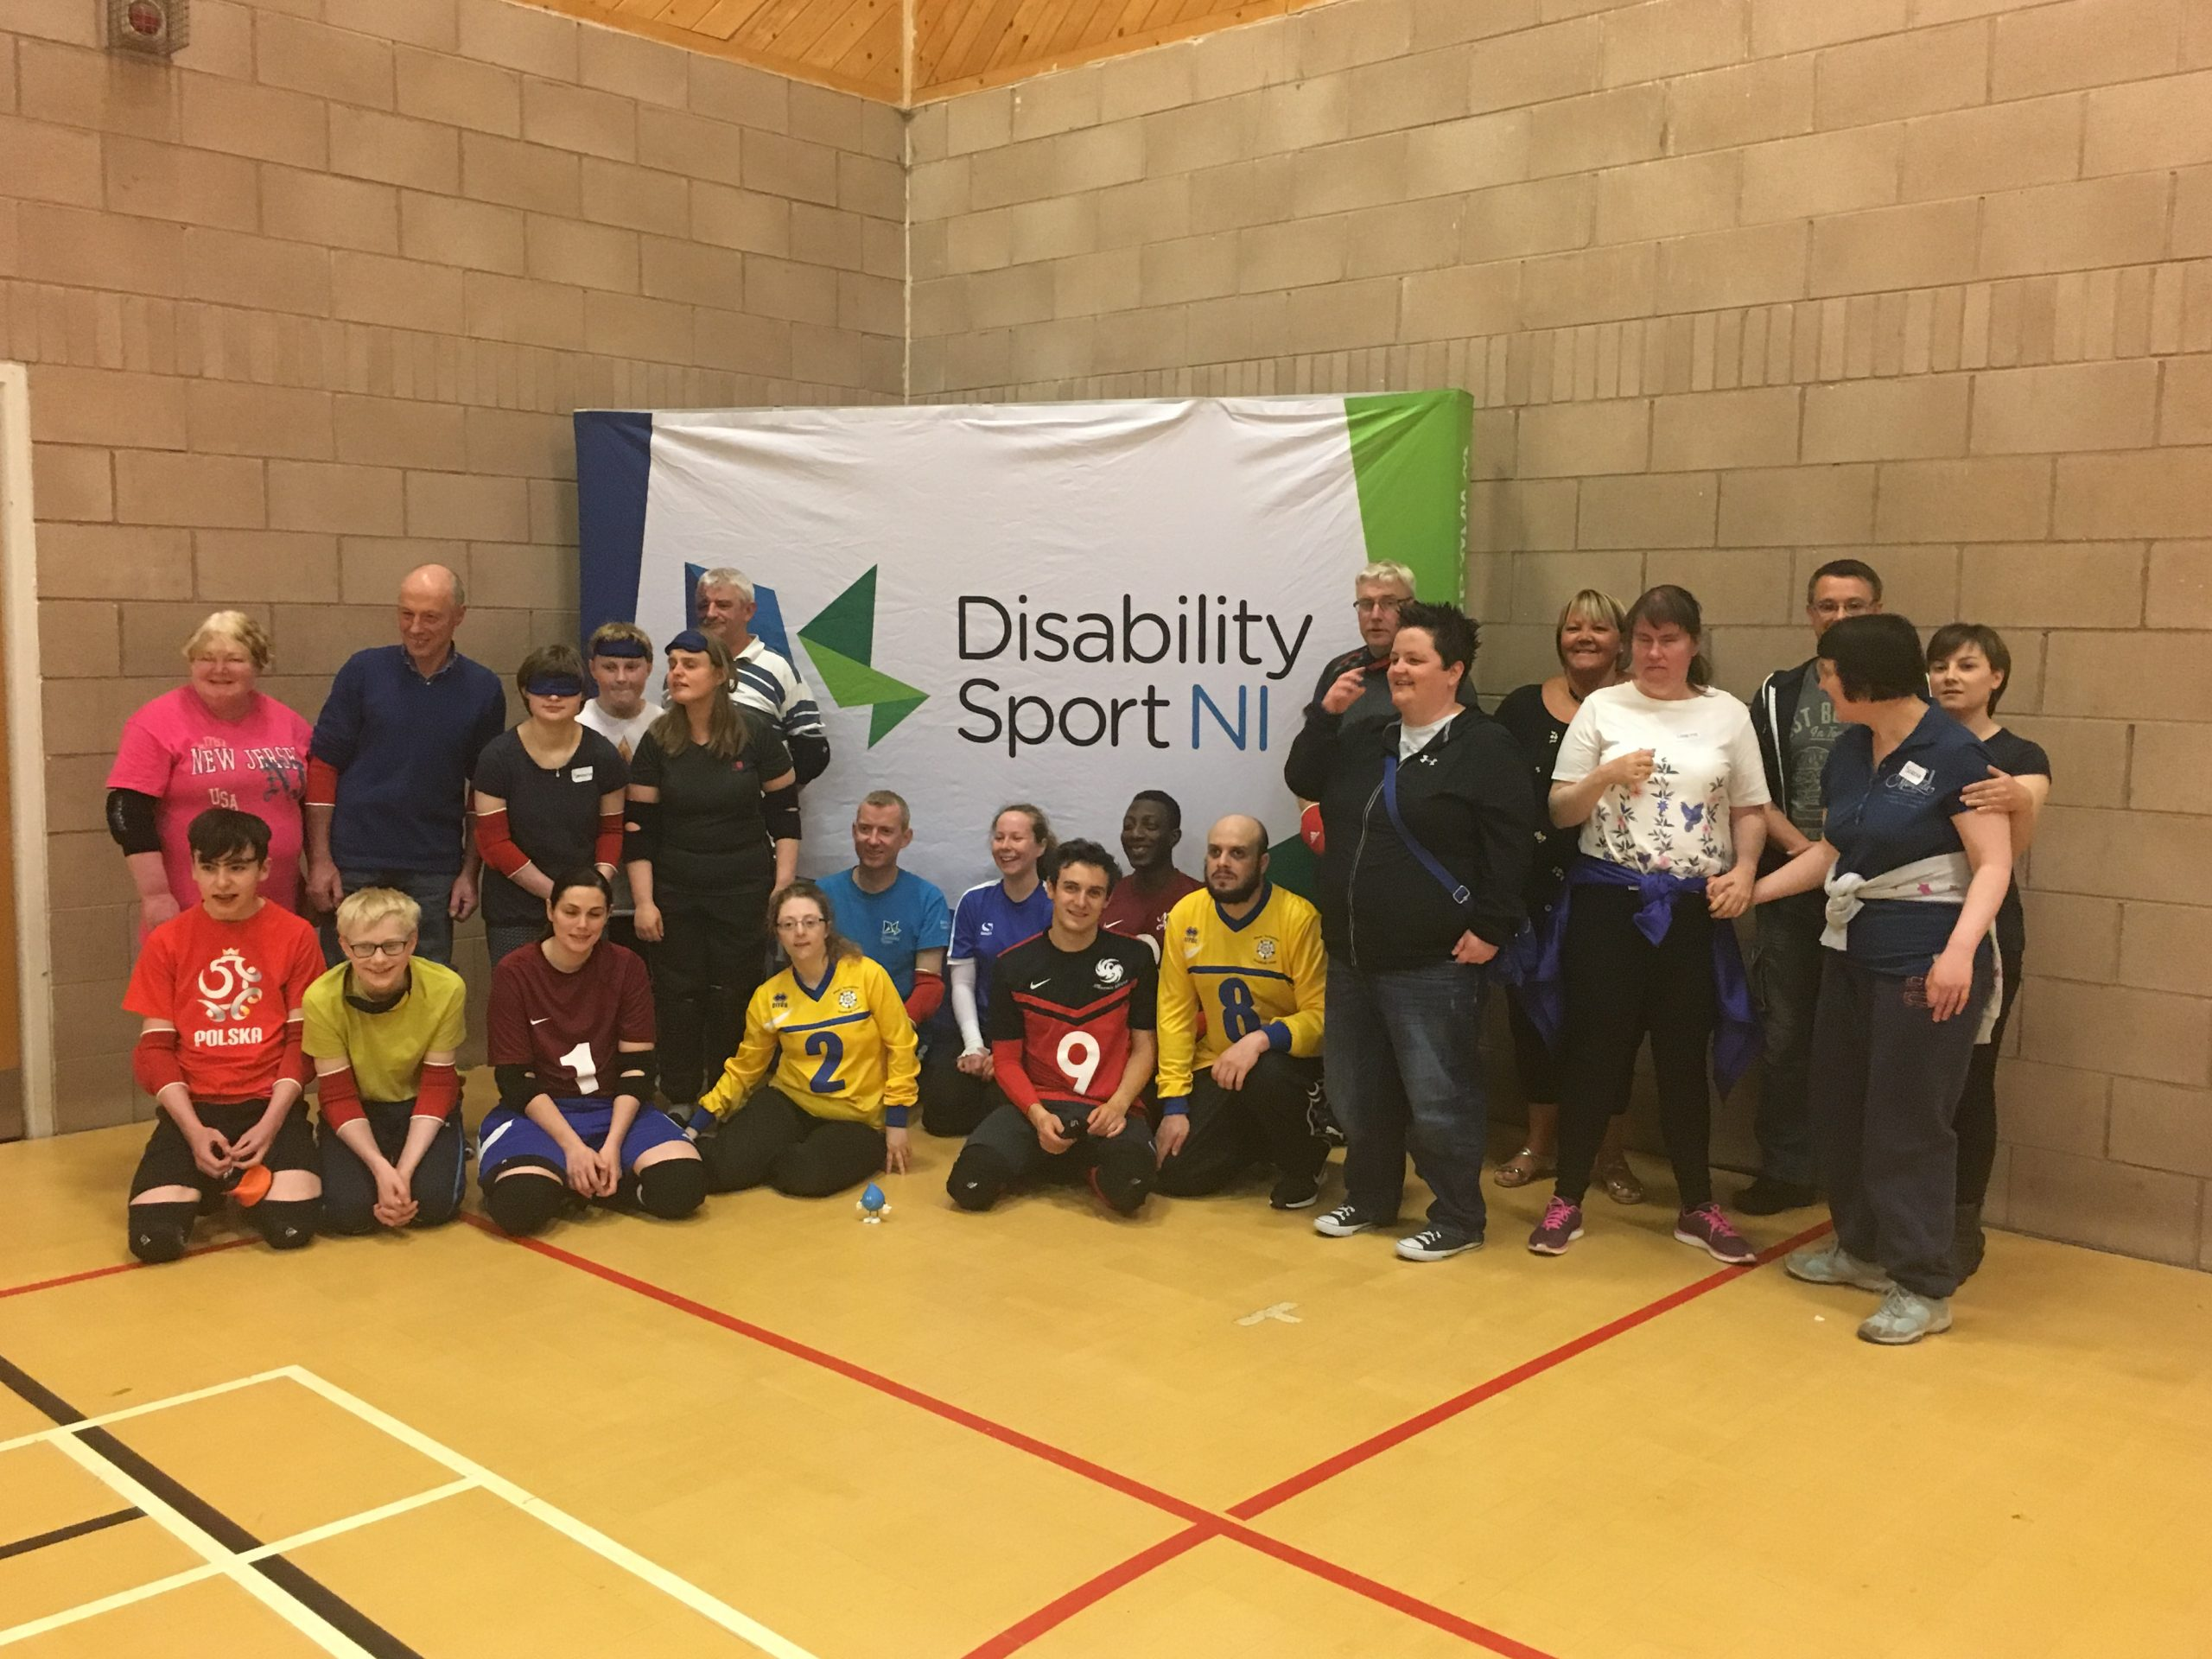 Group photo of everyone at the Norther Ireland Goalball Roadshow, with the Disability Sport Norther Ireland logo on a banner in the background